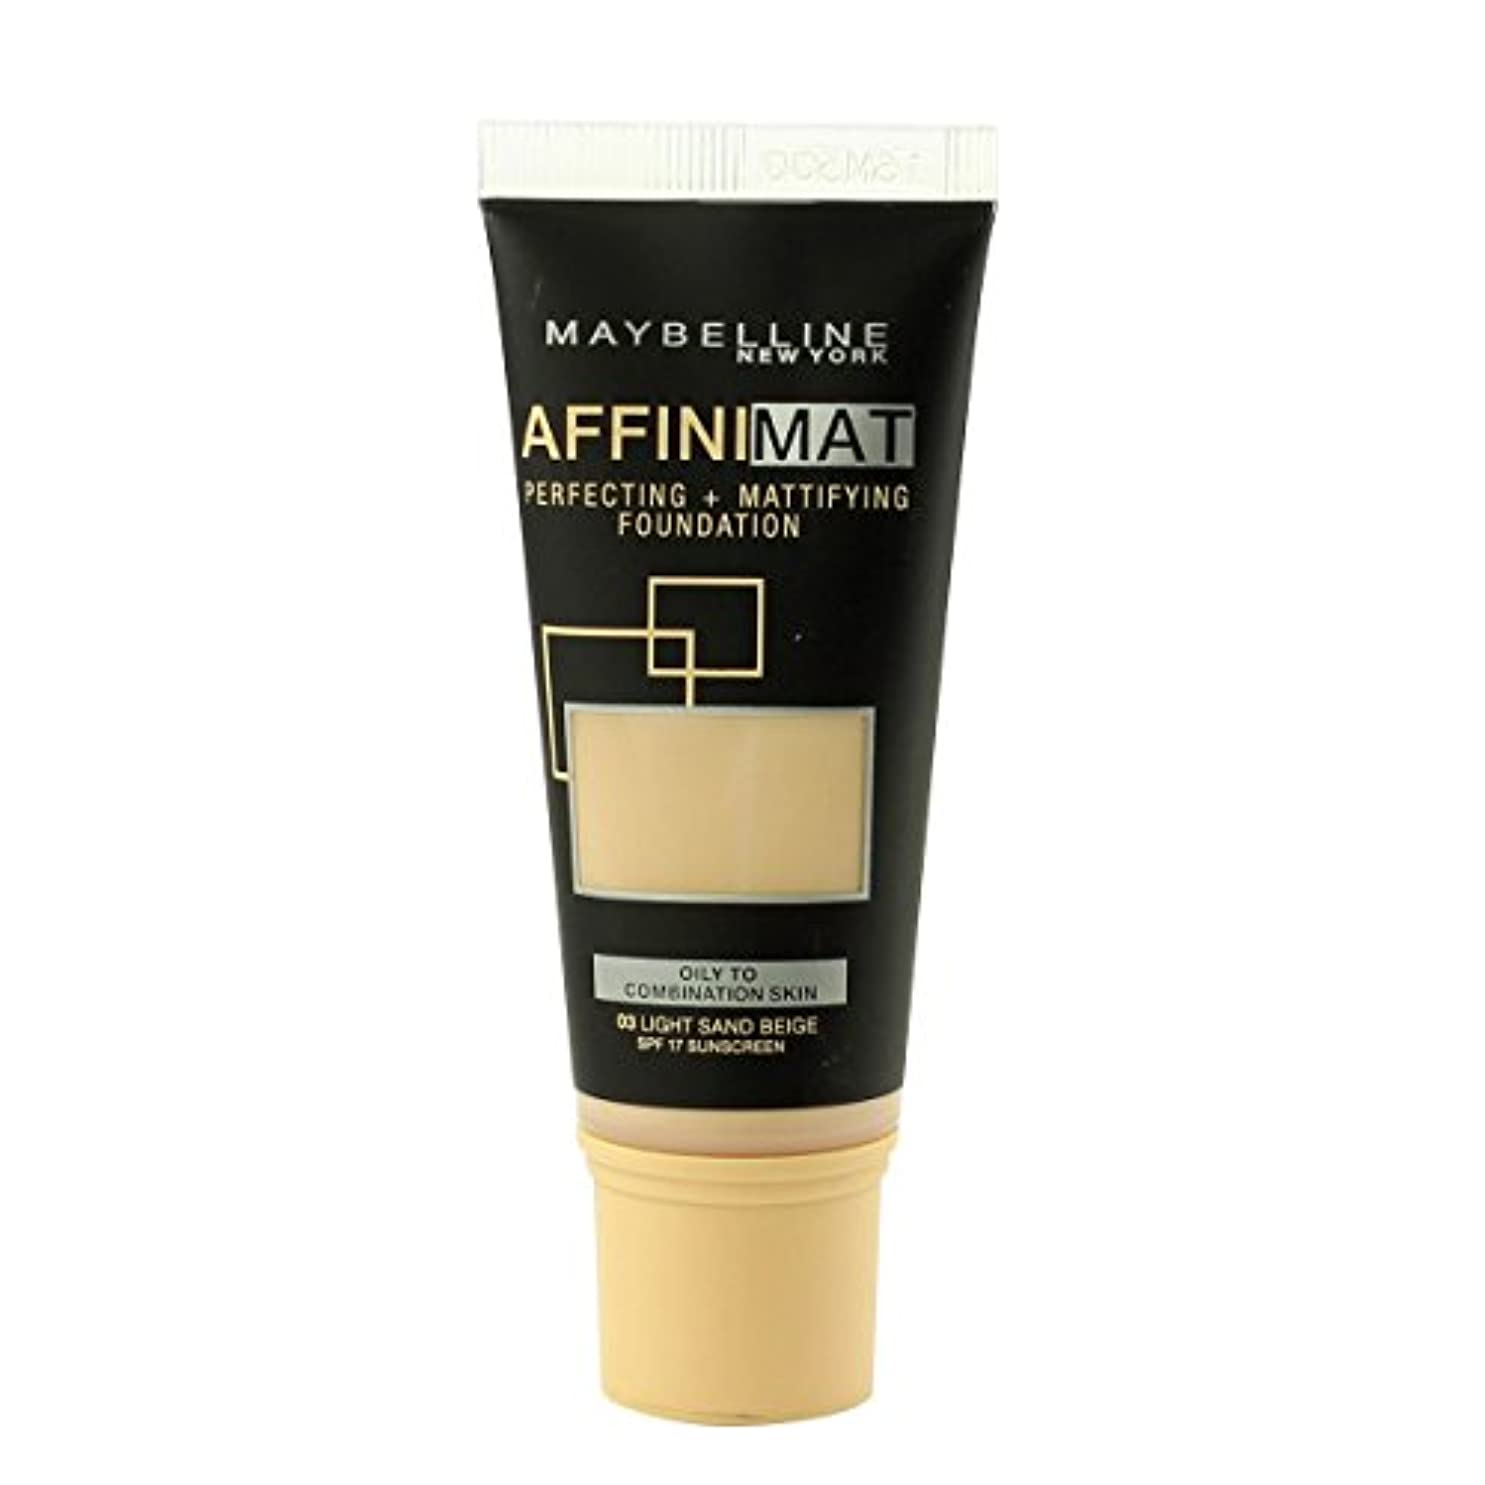 セラー無意識アレルギー性Maybelline Affinimat Perf.+Mattif. Foundation SPF17 (03 Light Sand Beige) 30ml